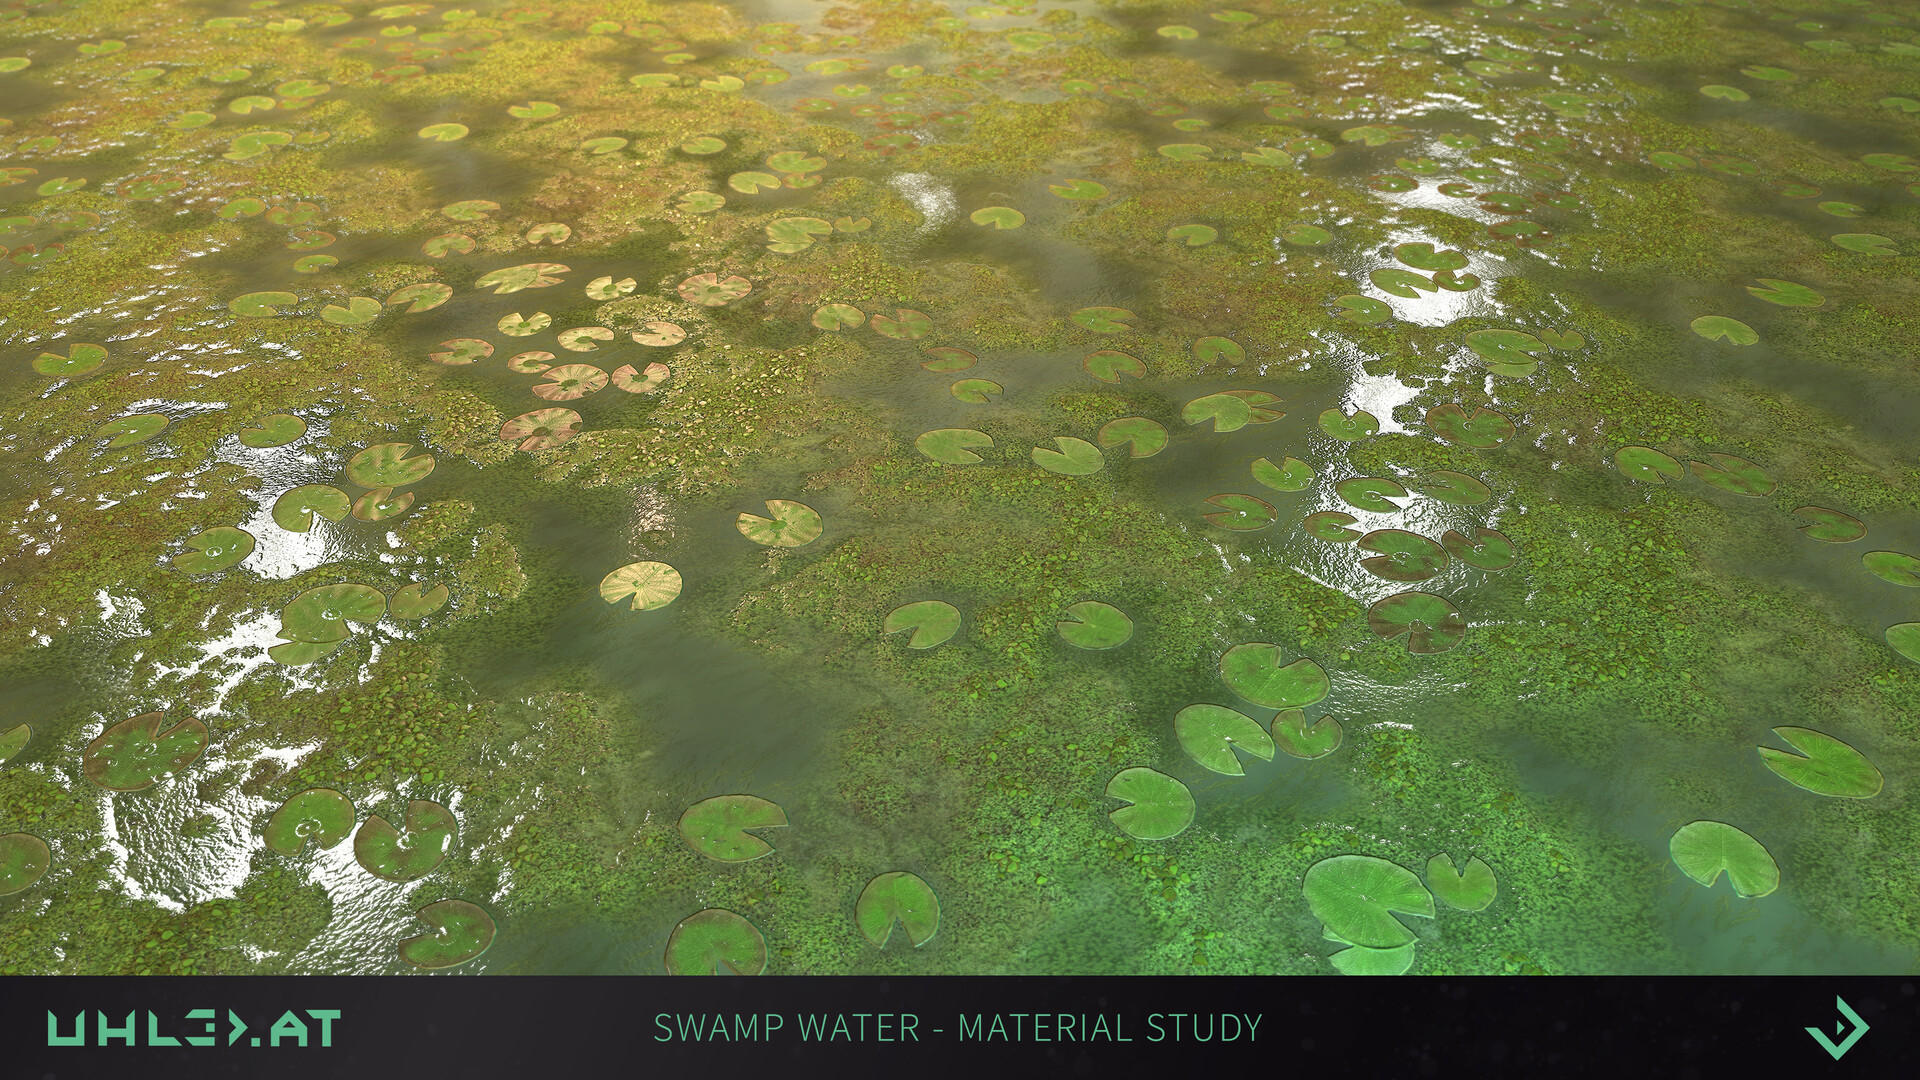 Dominik uhl swamp water 05